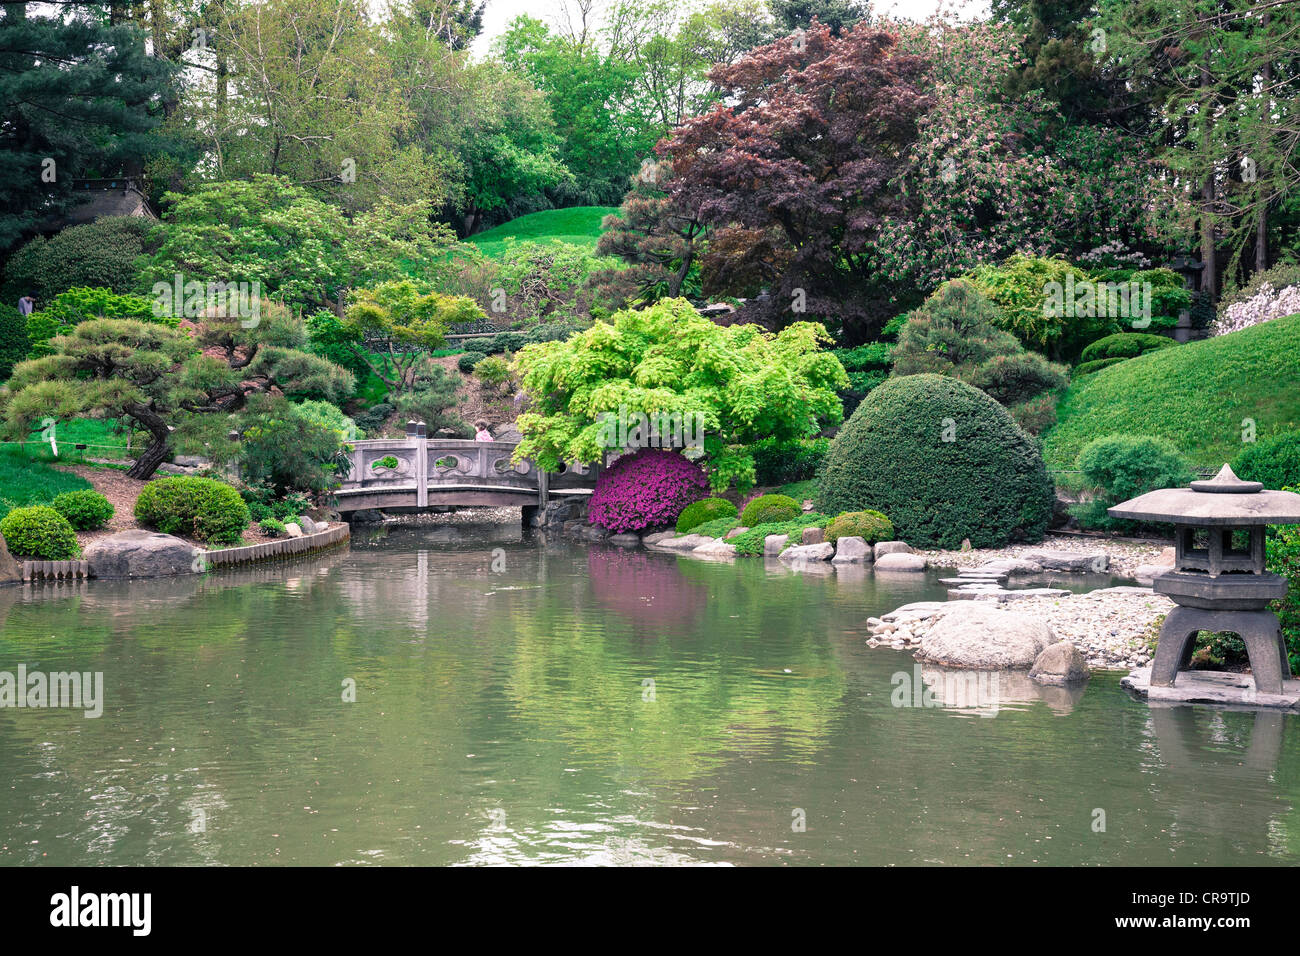 Japanese Hill And Pond Garden In The Brooklyn Botanic Garden Nyc Stock Photo 48774725 Alamy